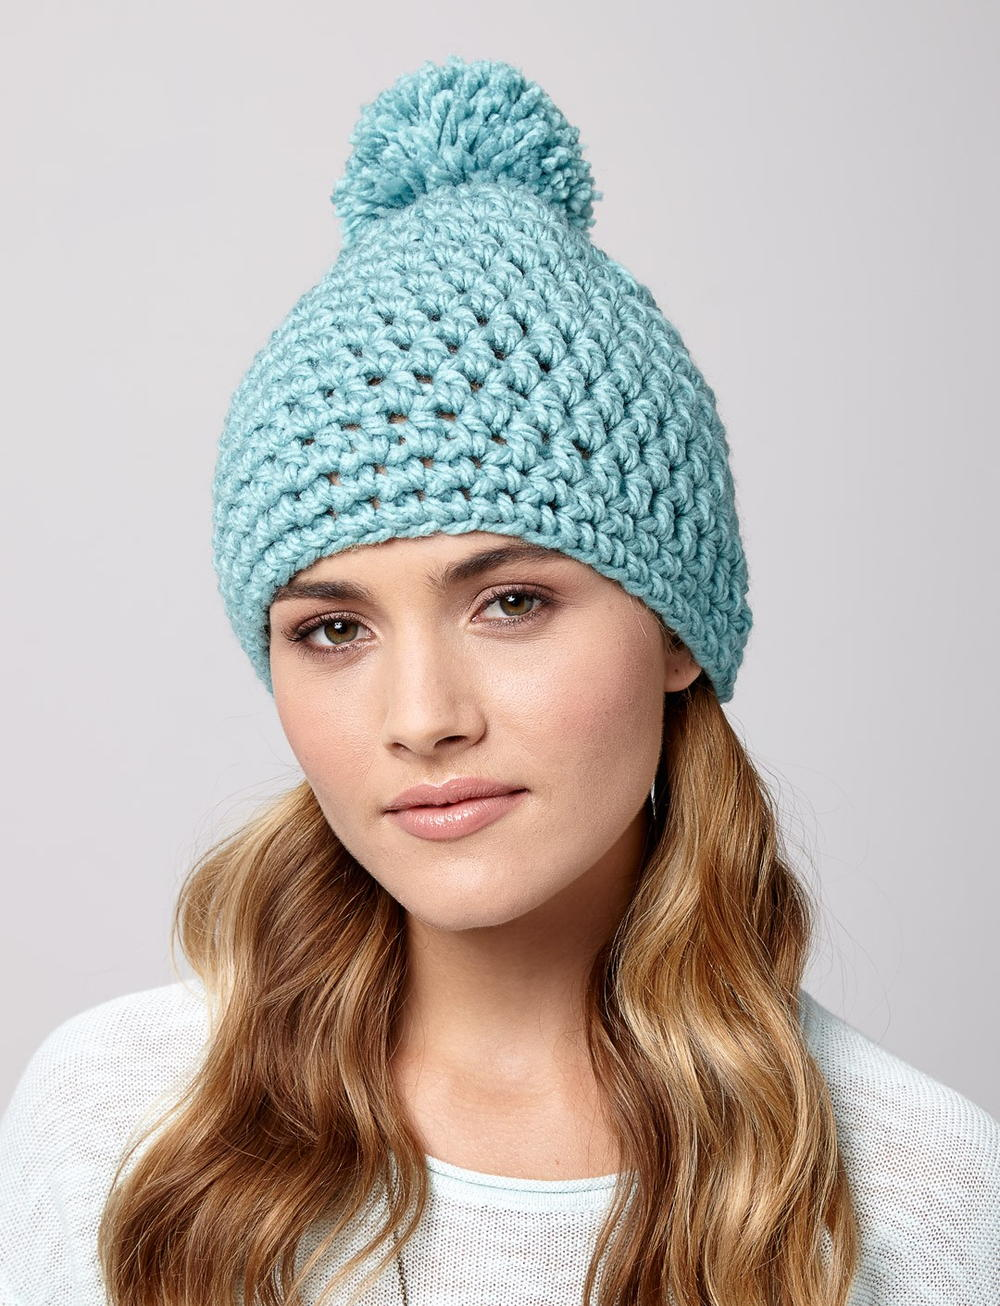 Snow Drift Crochet Hat | AllFreeCrochet.com